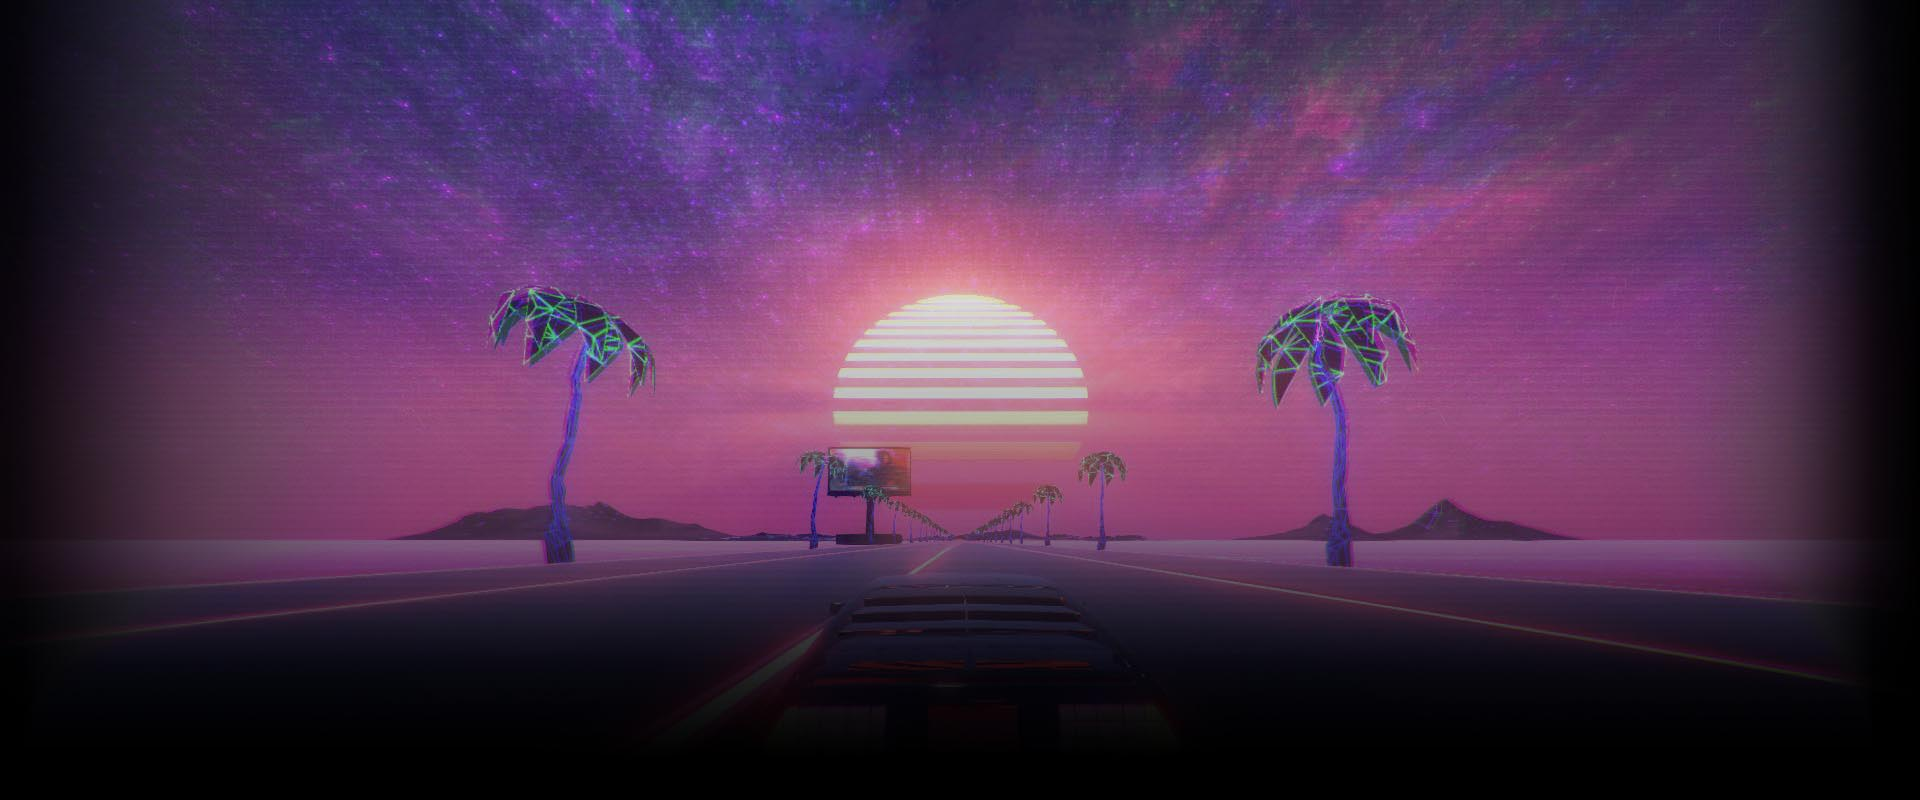 Steam Community Guide The Most Vaporwave Aesthetic